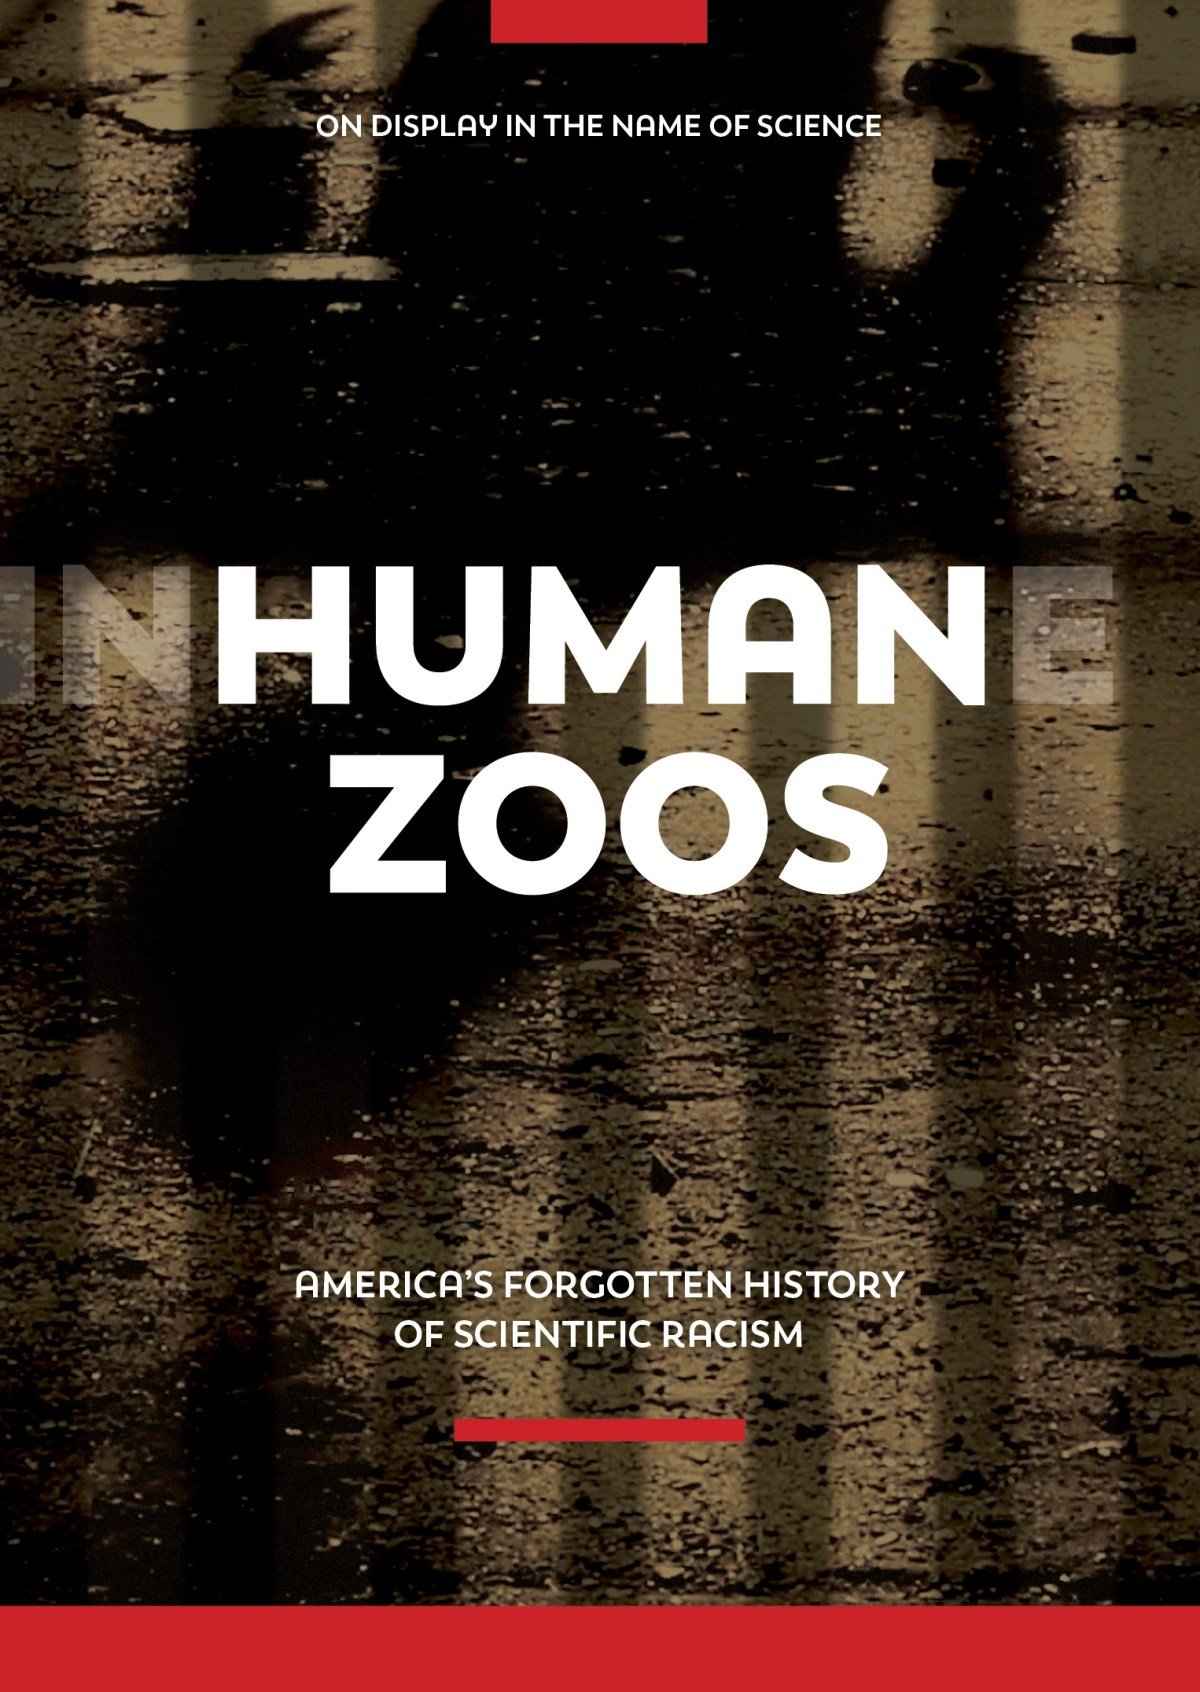 Human Zoos: America's Forgotten History of Scientific Racism: Documentary